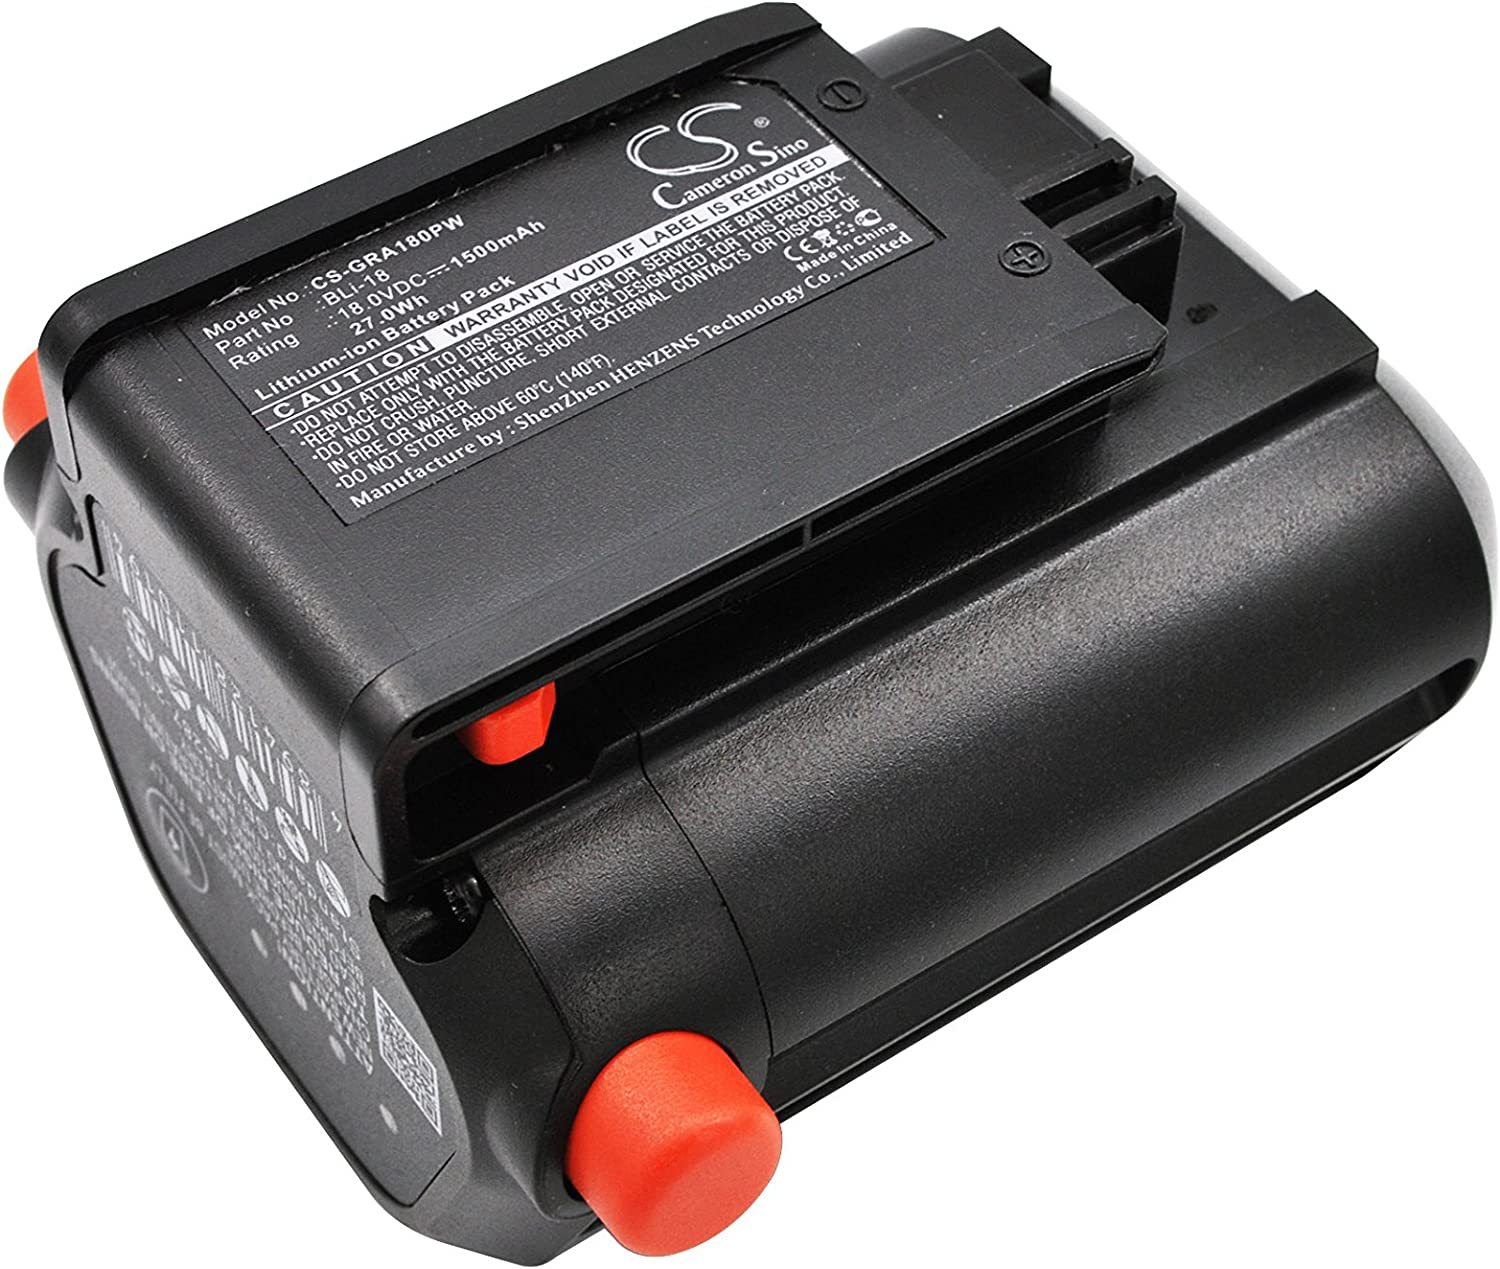 1500mAh Battery Replacement for Gardena 9824 free 8866 Max 66% OFF 881 Ea Trimmer